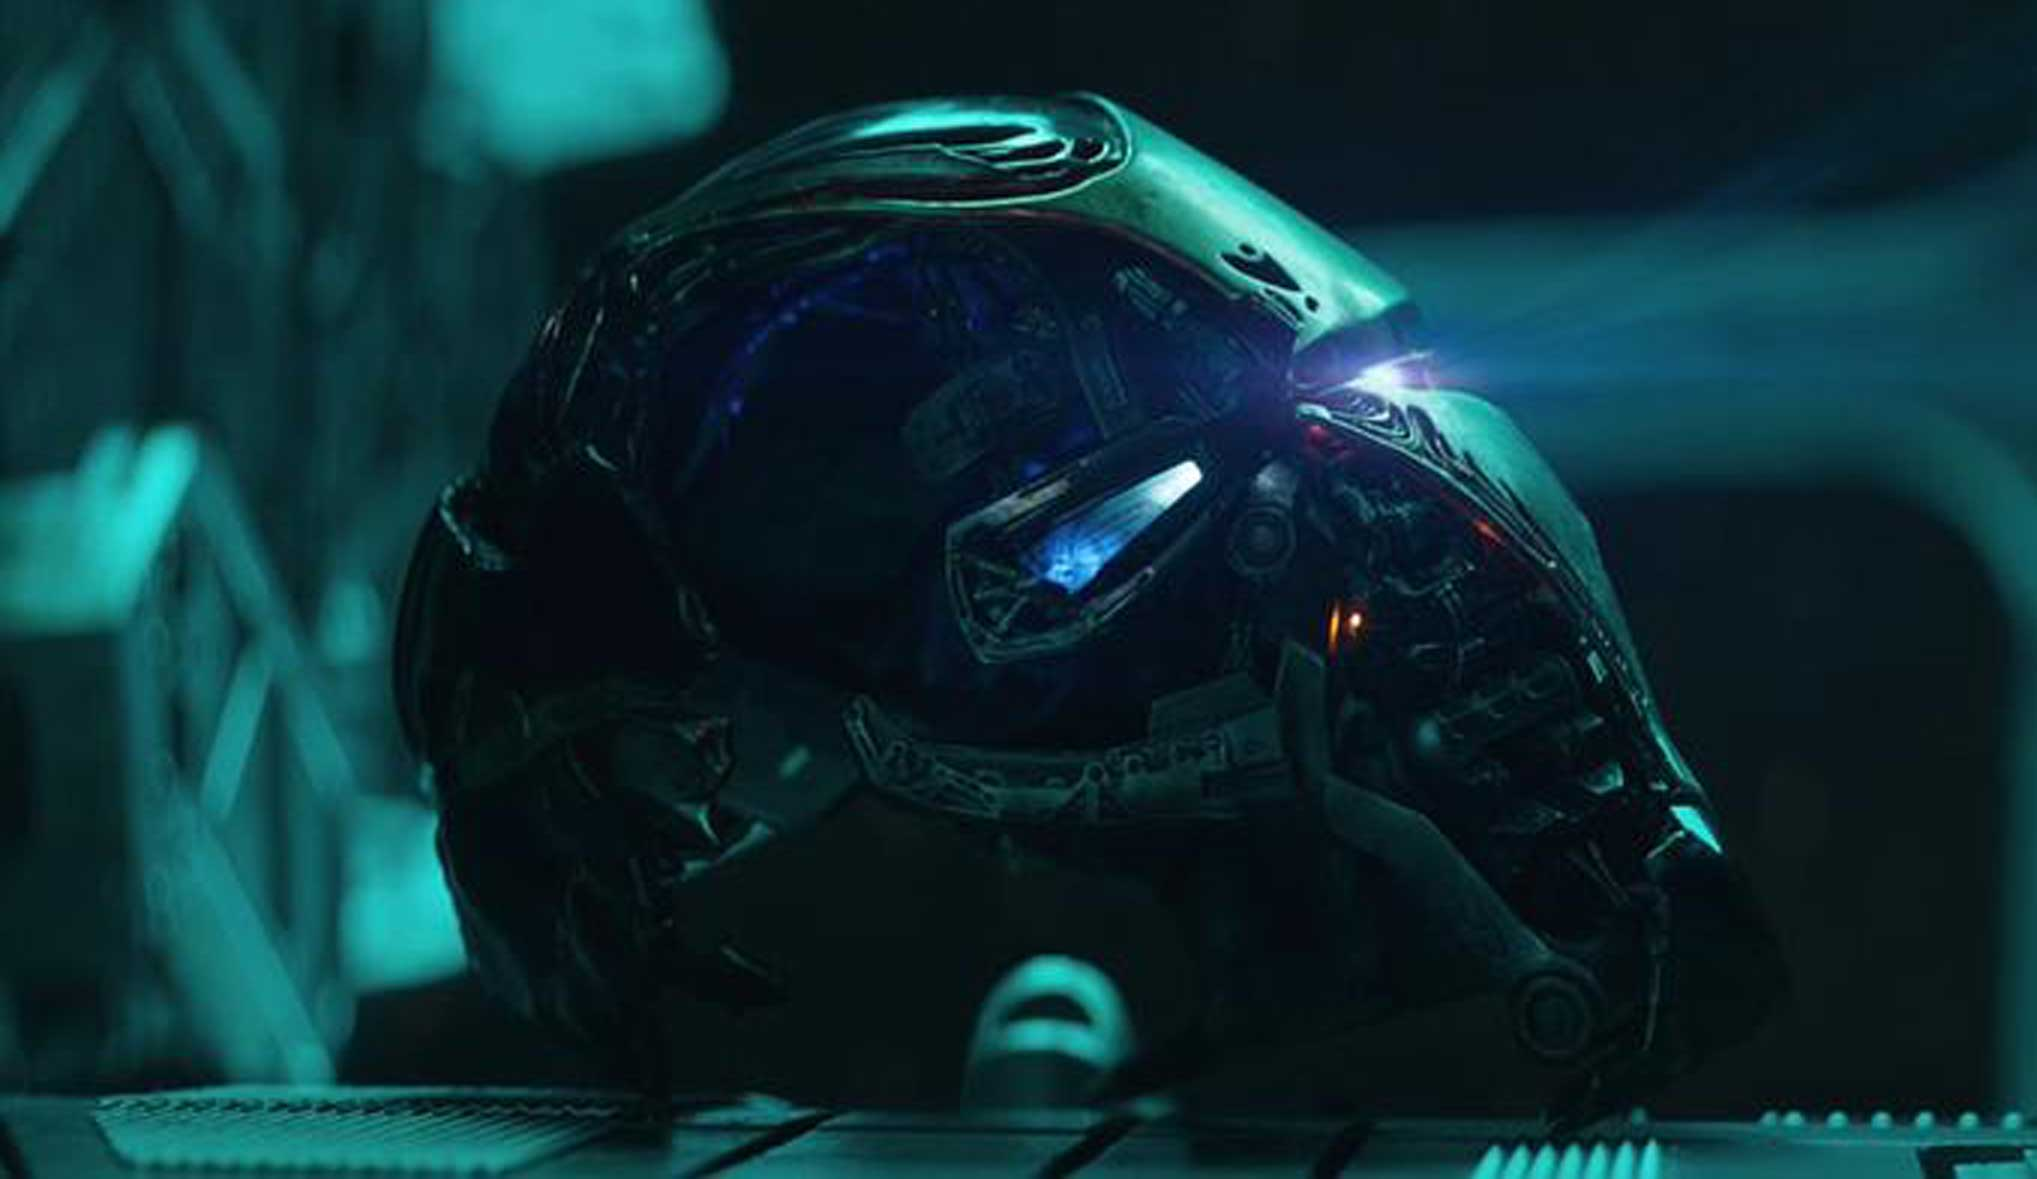 'Avengers: Endgame' First Trailer: Part Of The Journey Is The End